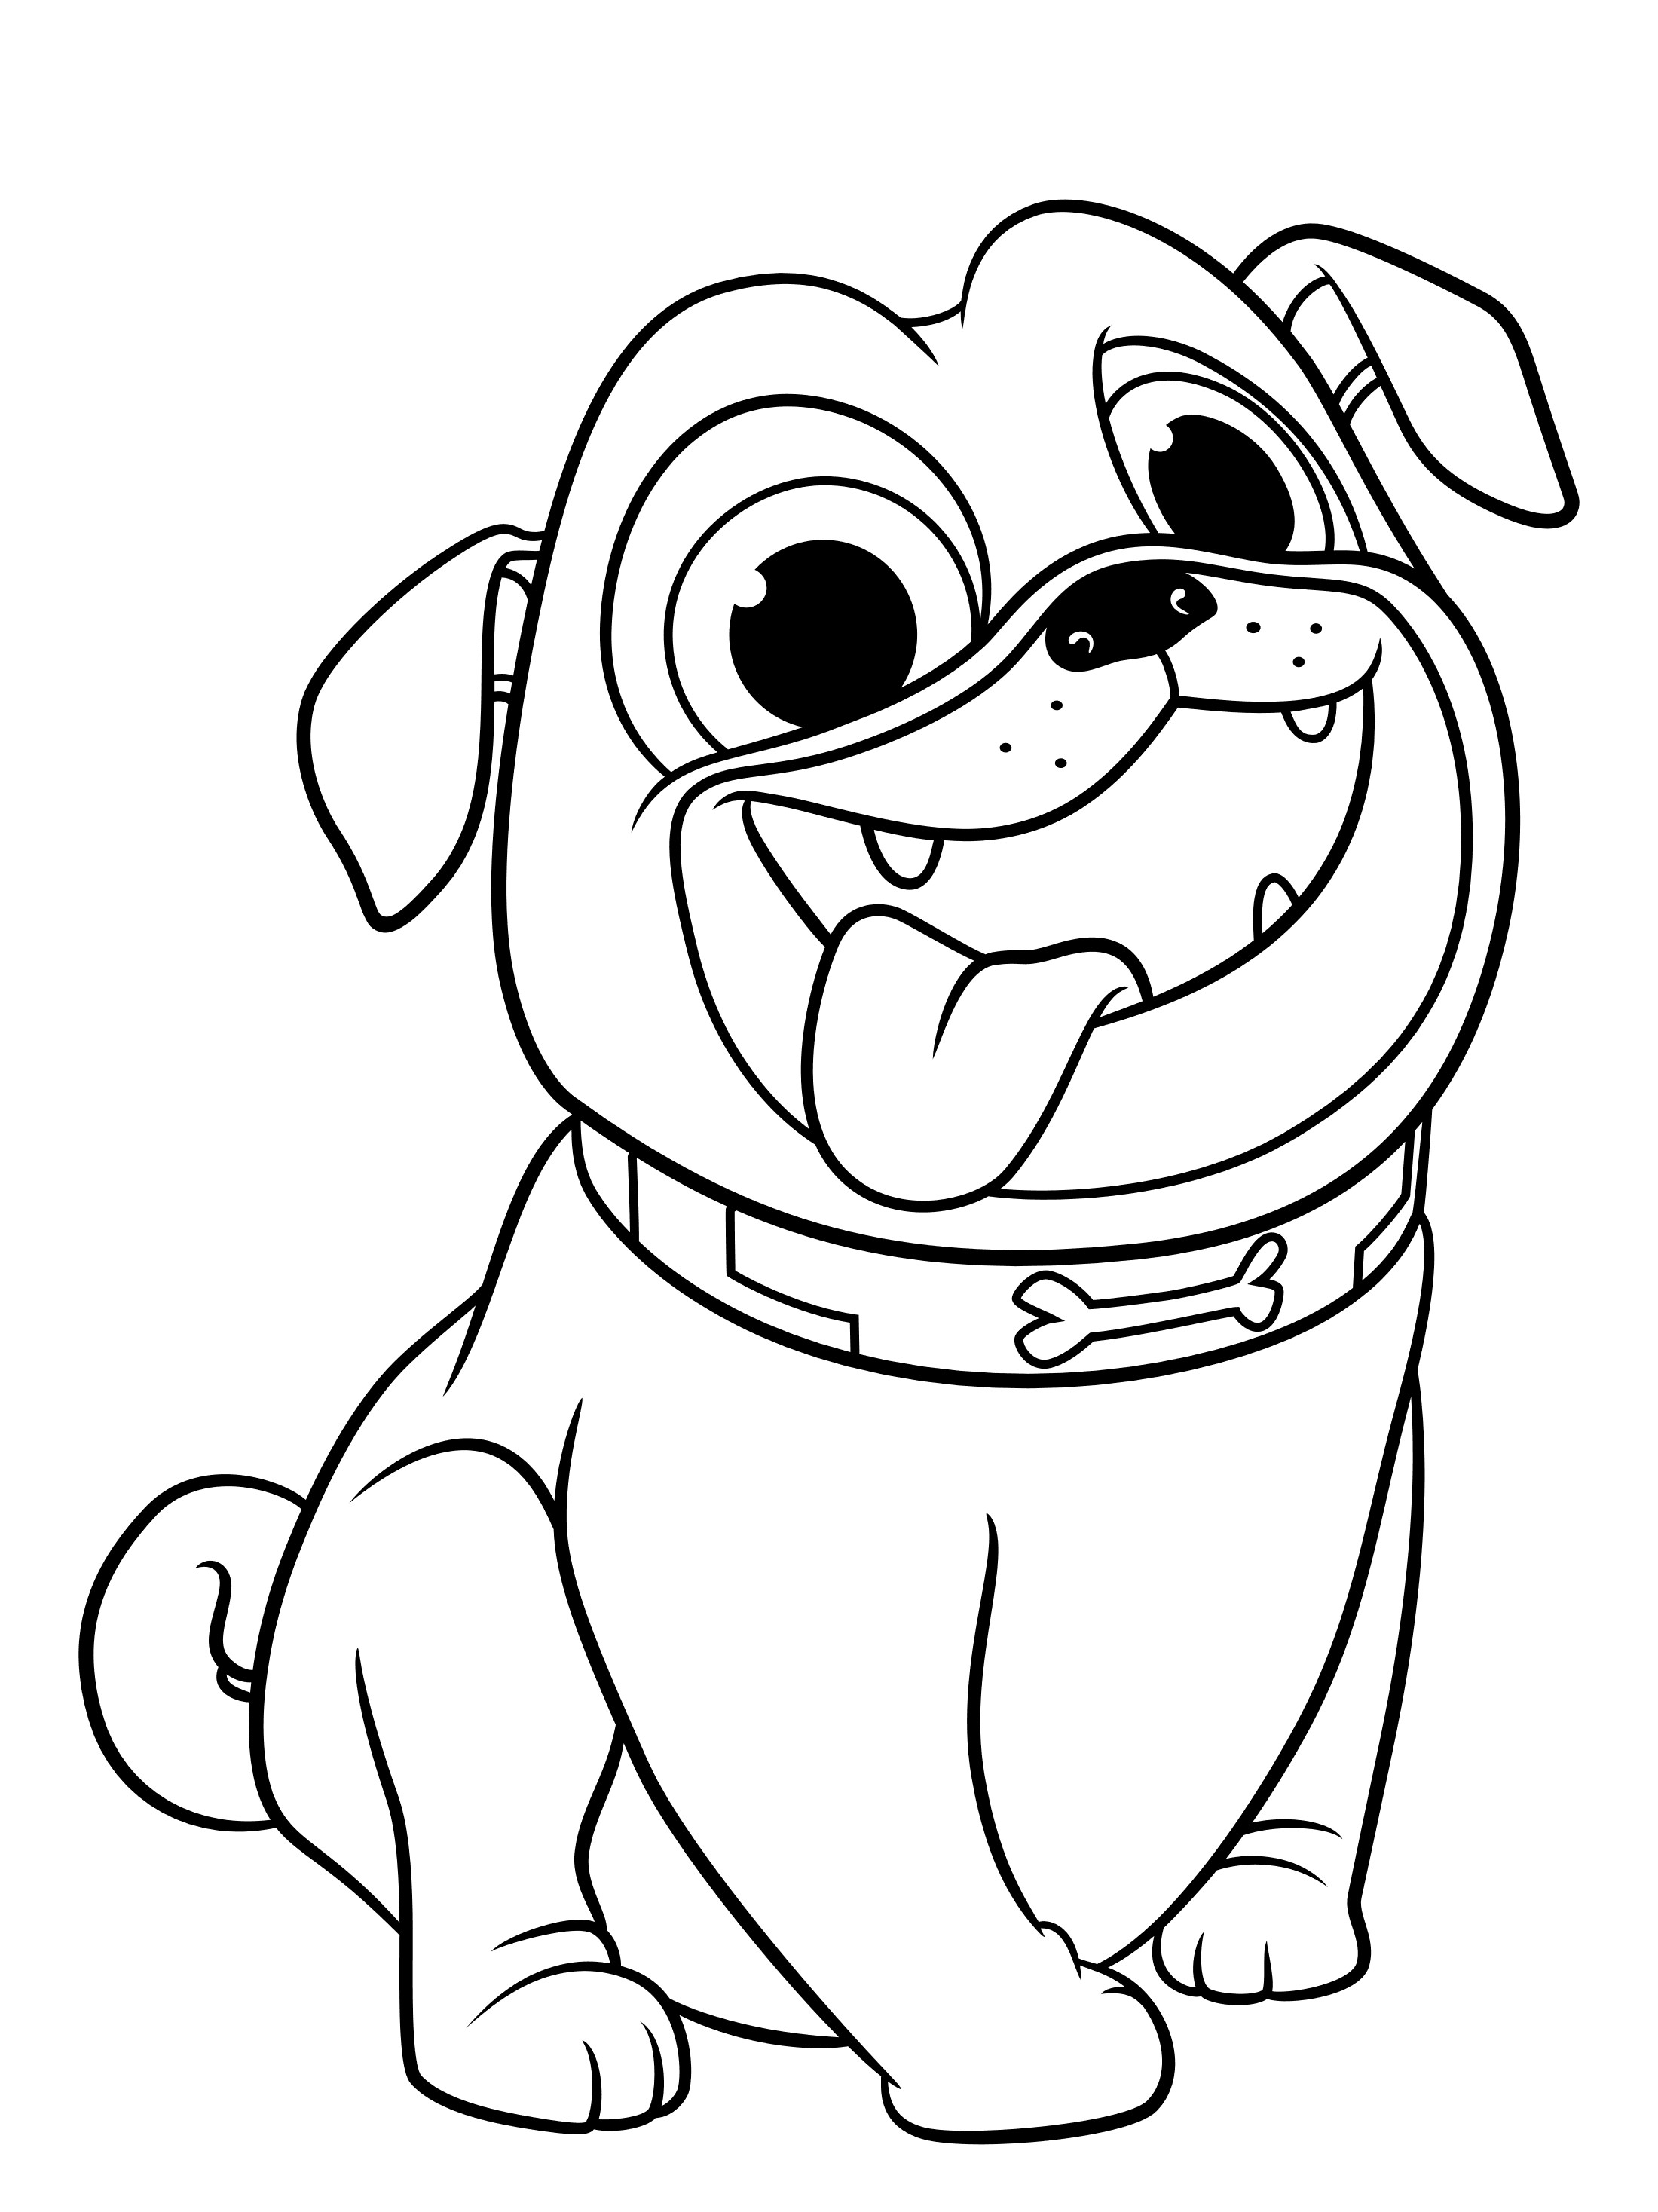 dog color page top 10 dog names coloring pages fast free and printable color dog page